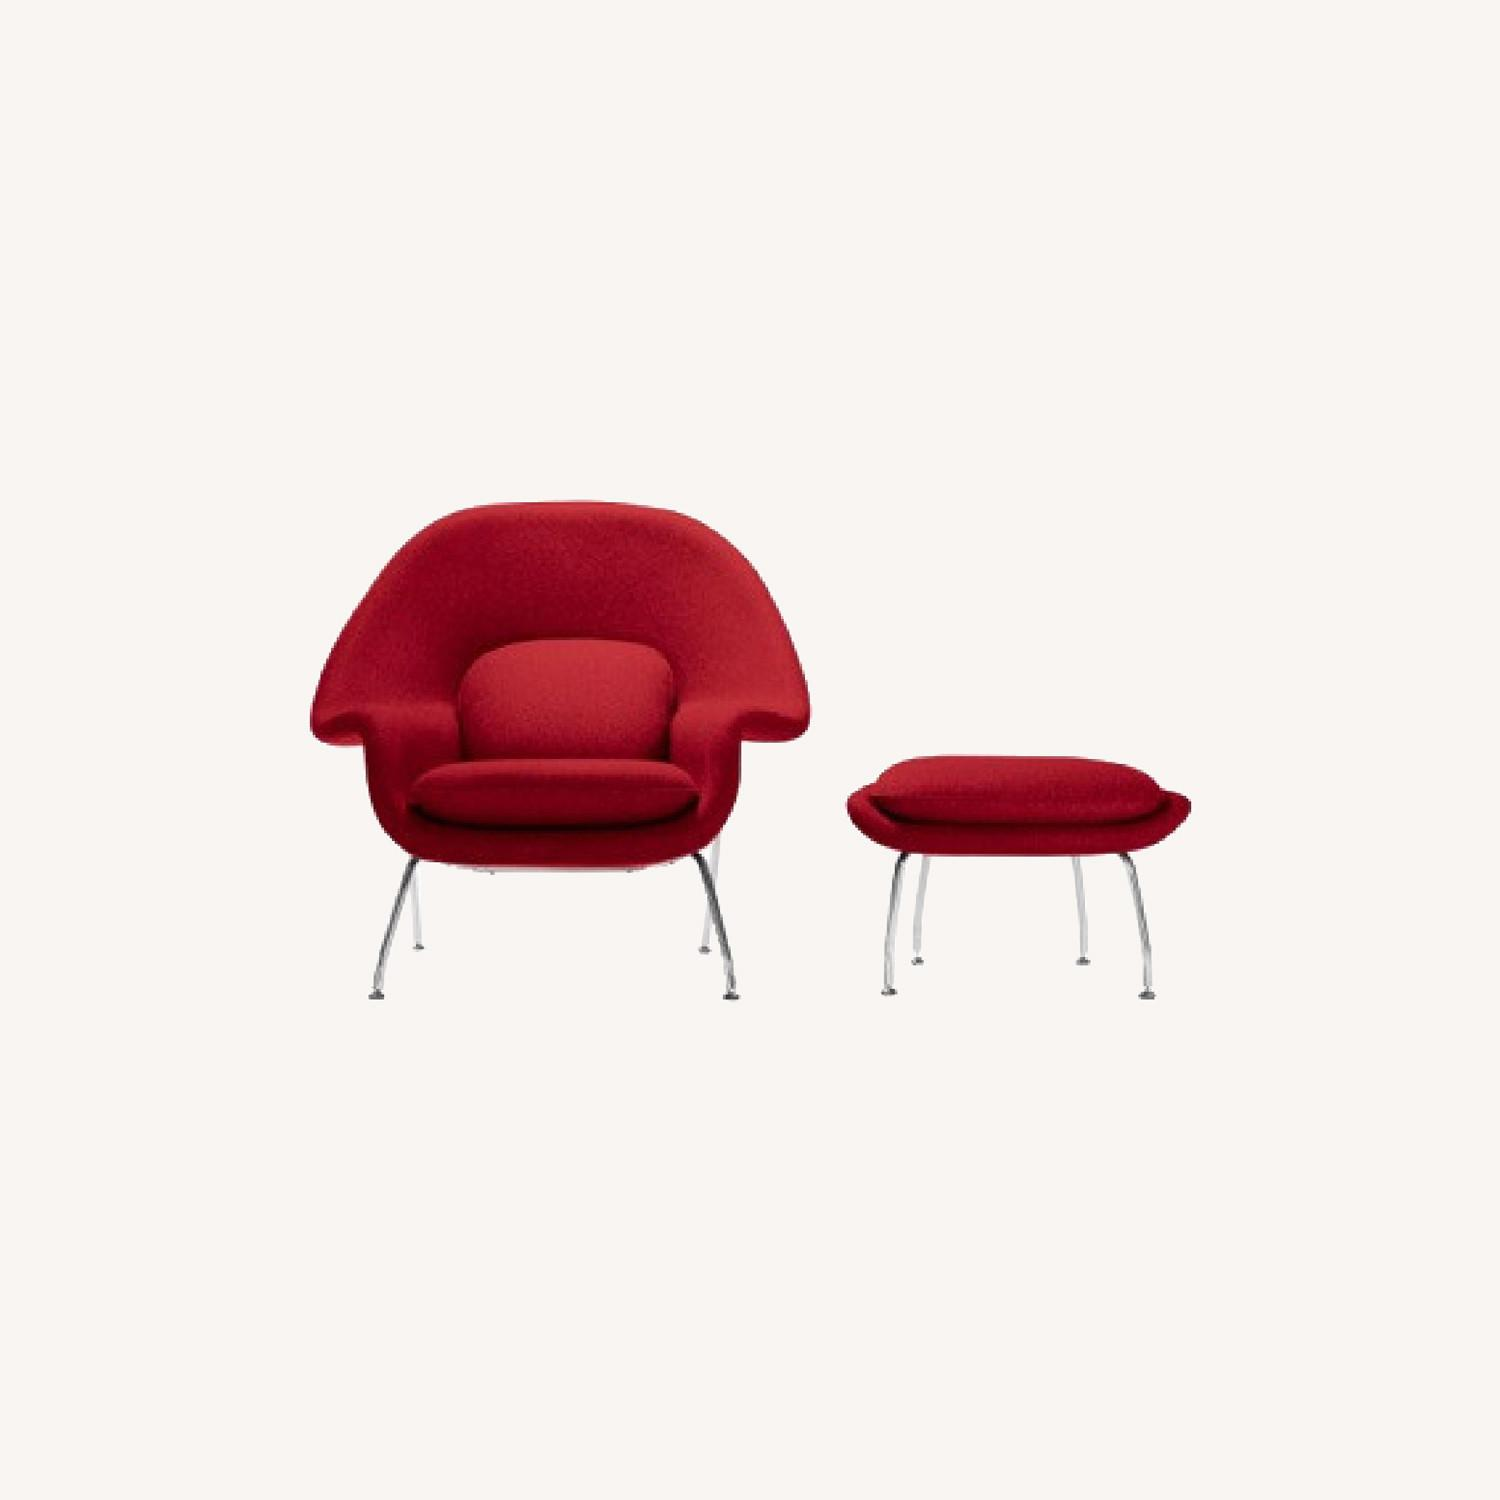 Rove Concepts Womb Chair and Ottoman - image-0